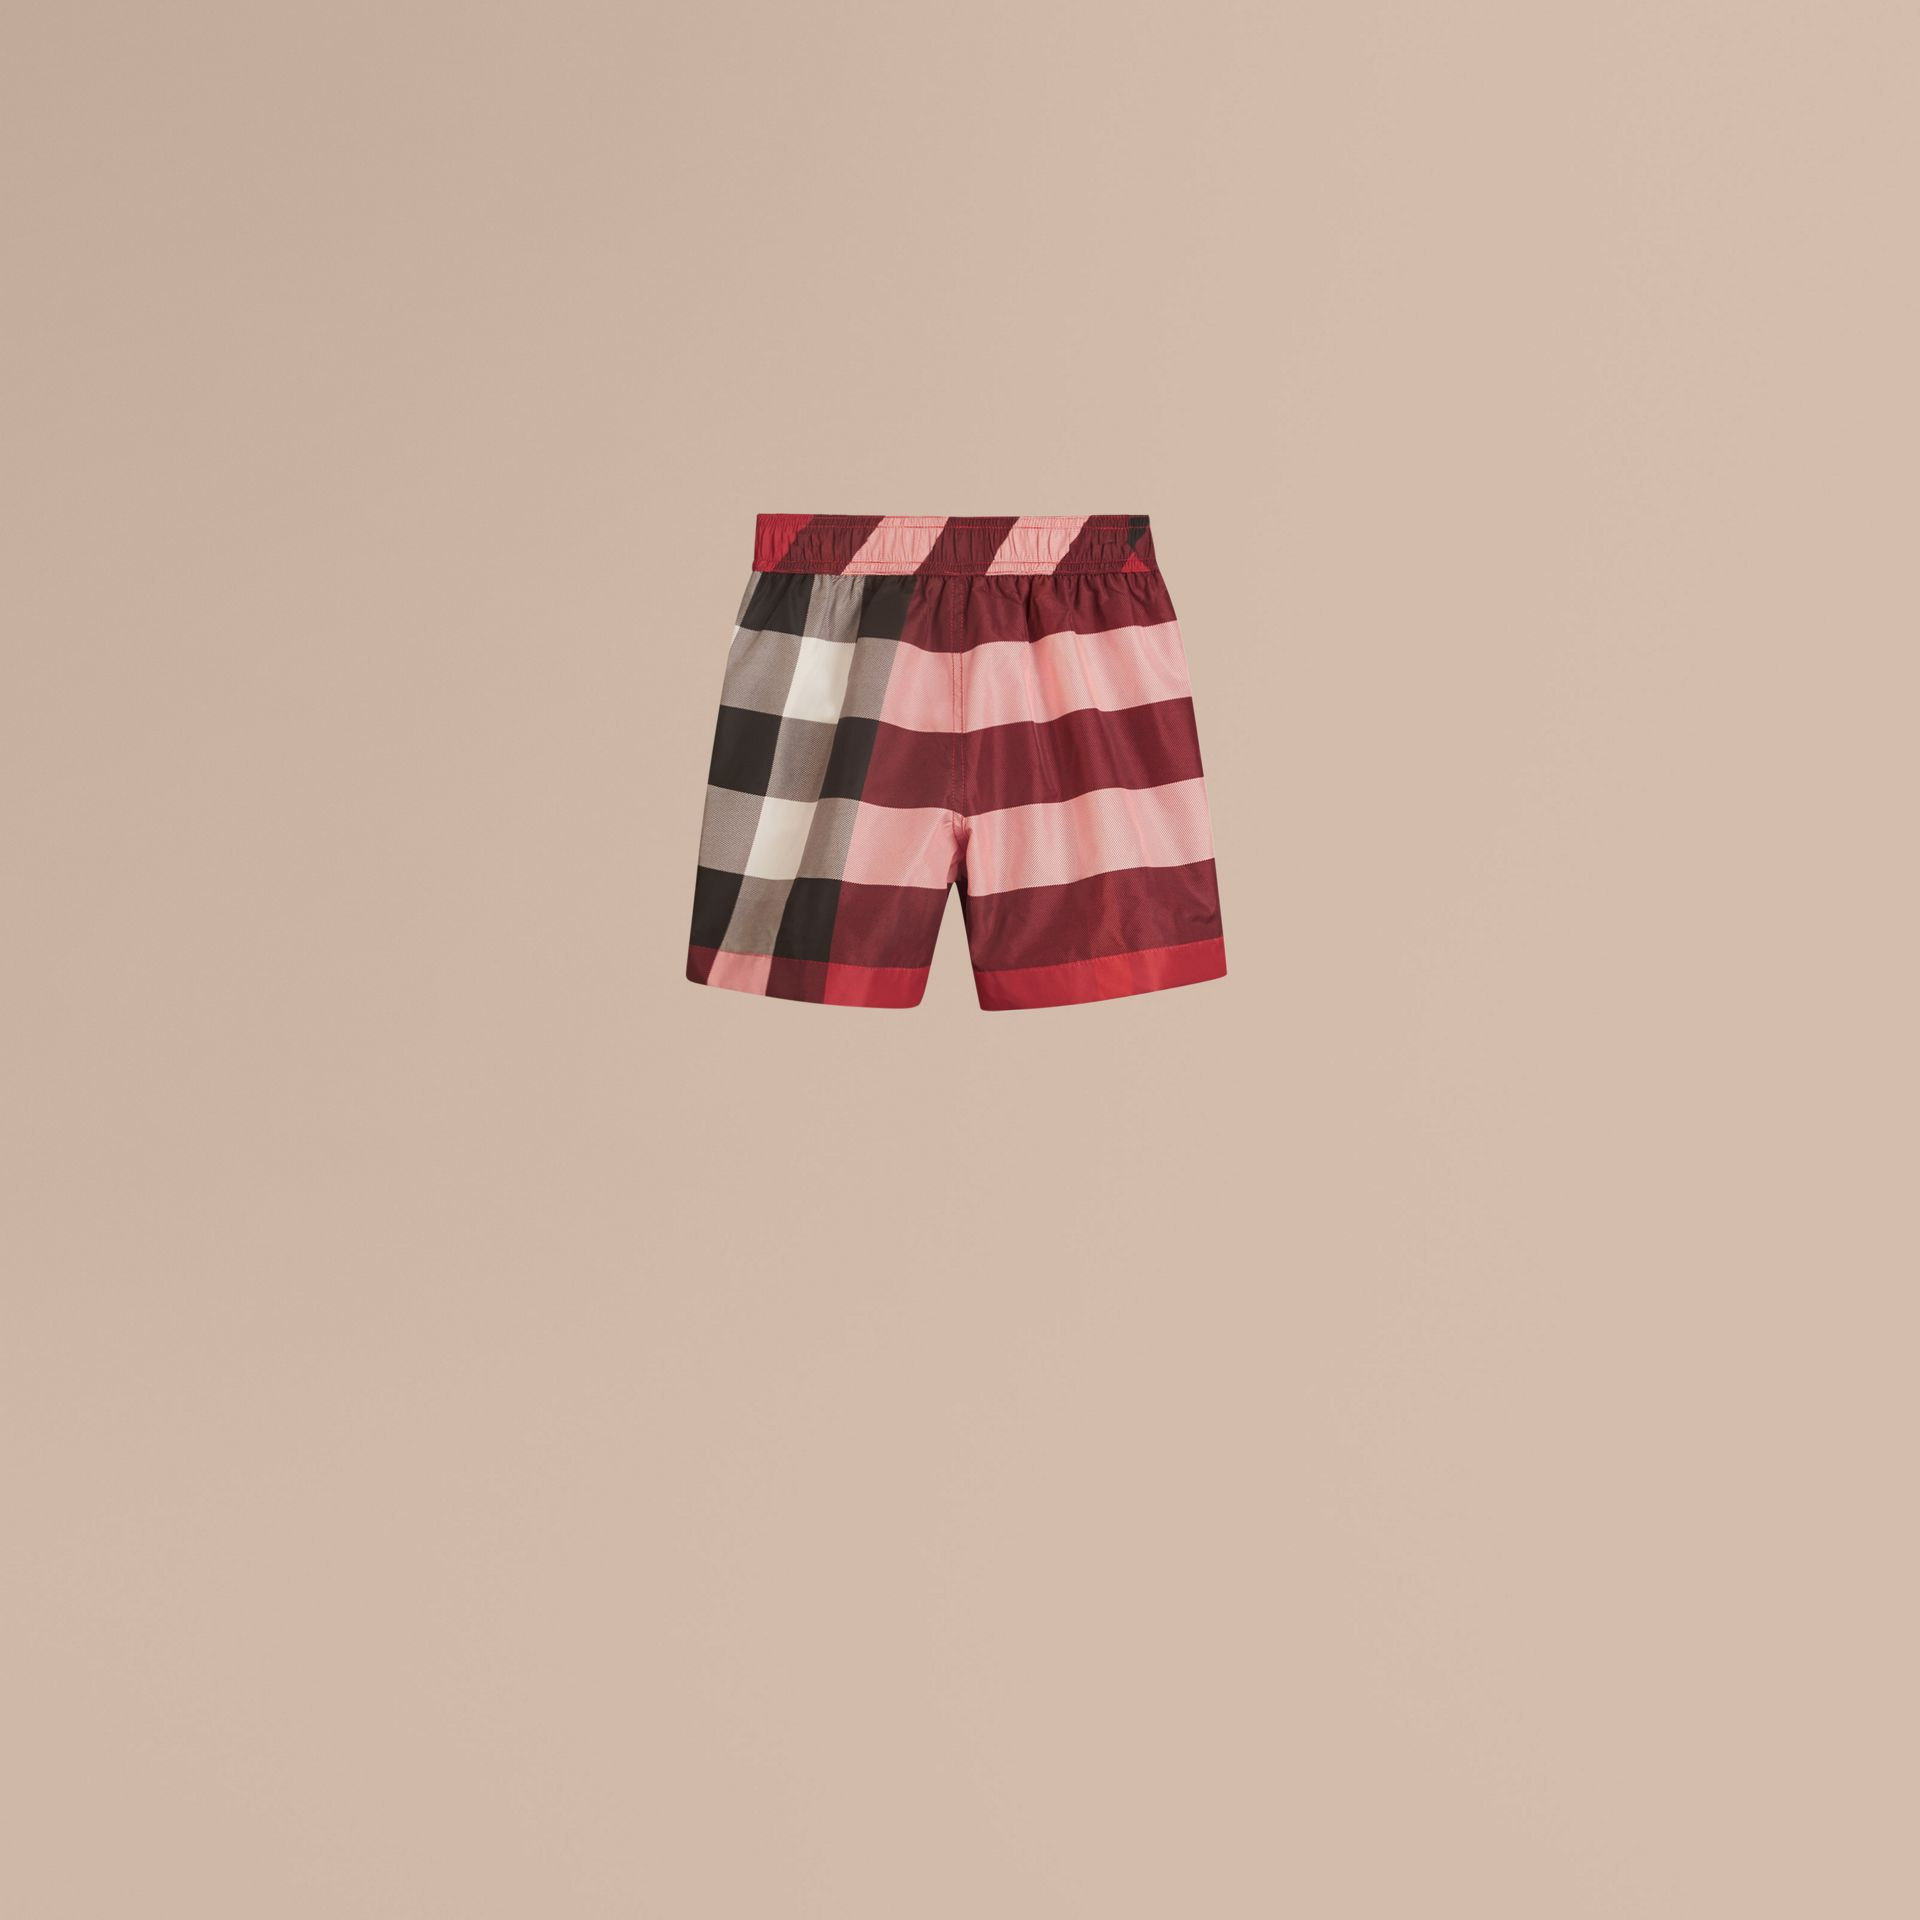 Short de bain à motif check (Rouge Parade) - Garçon | Burberry - photo de la galerie 3